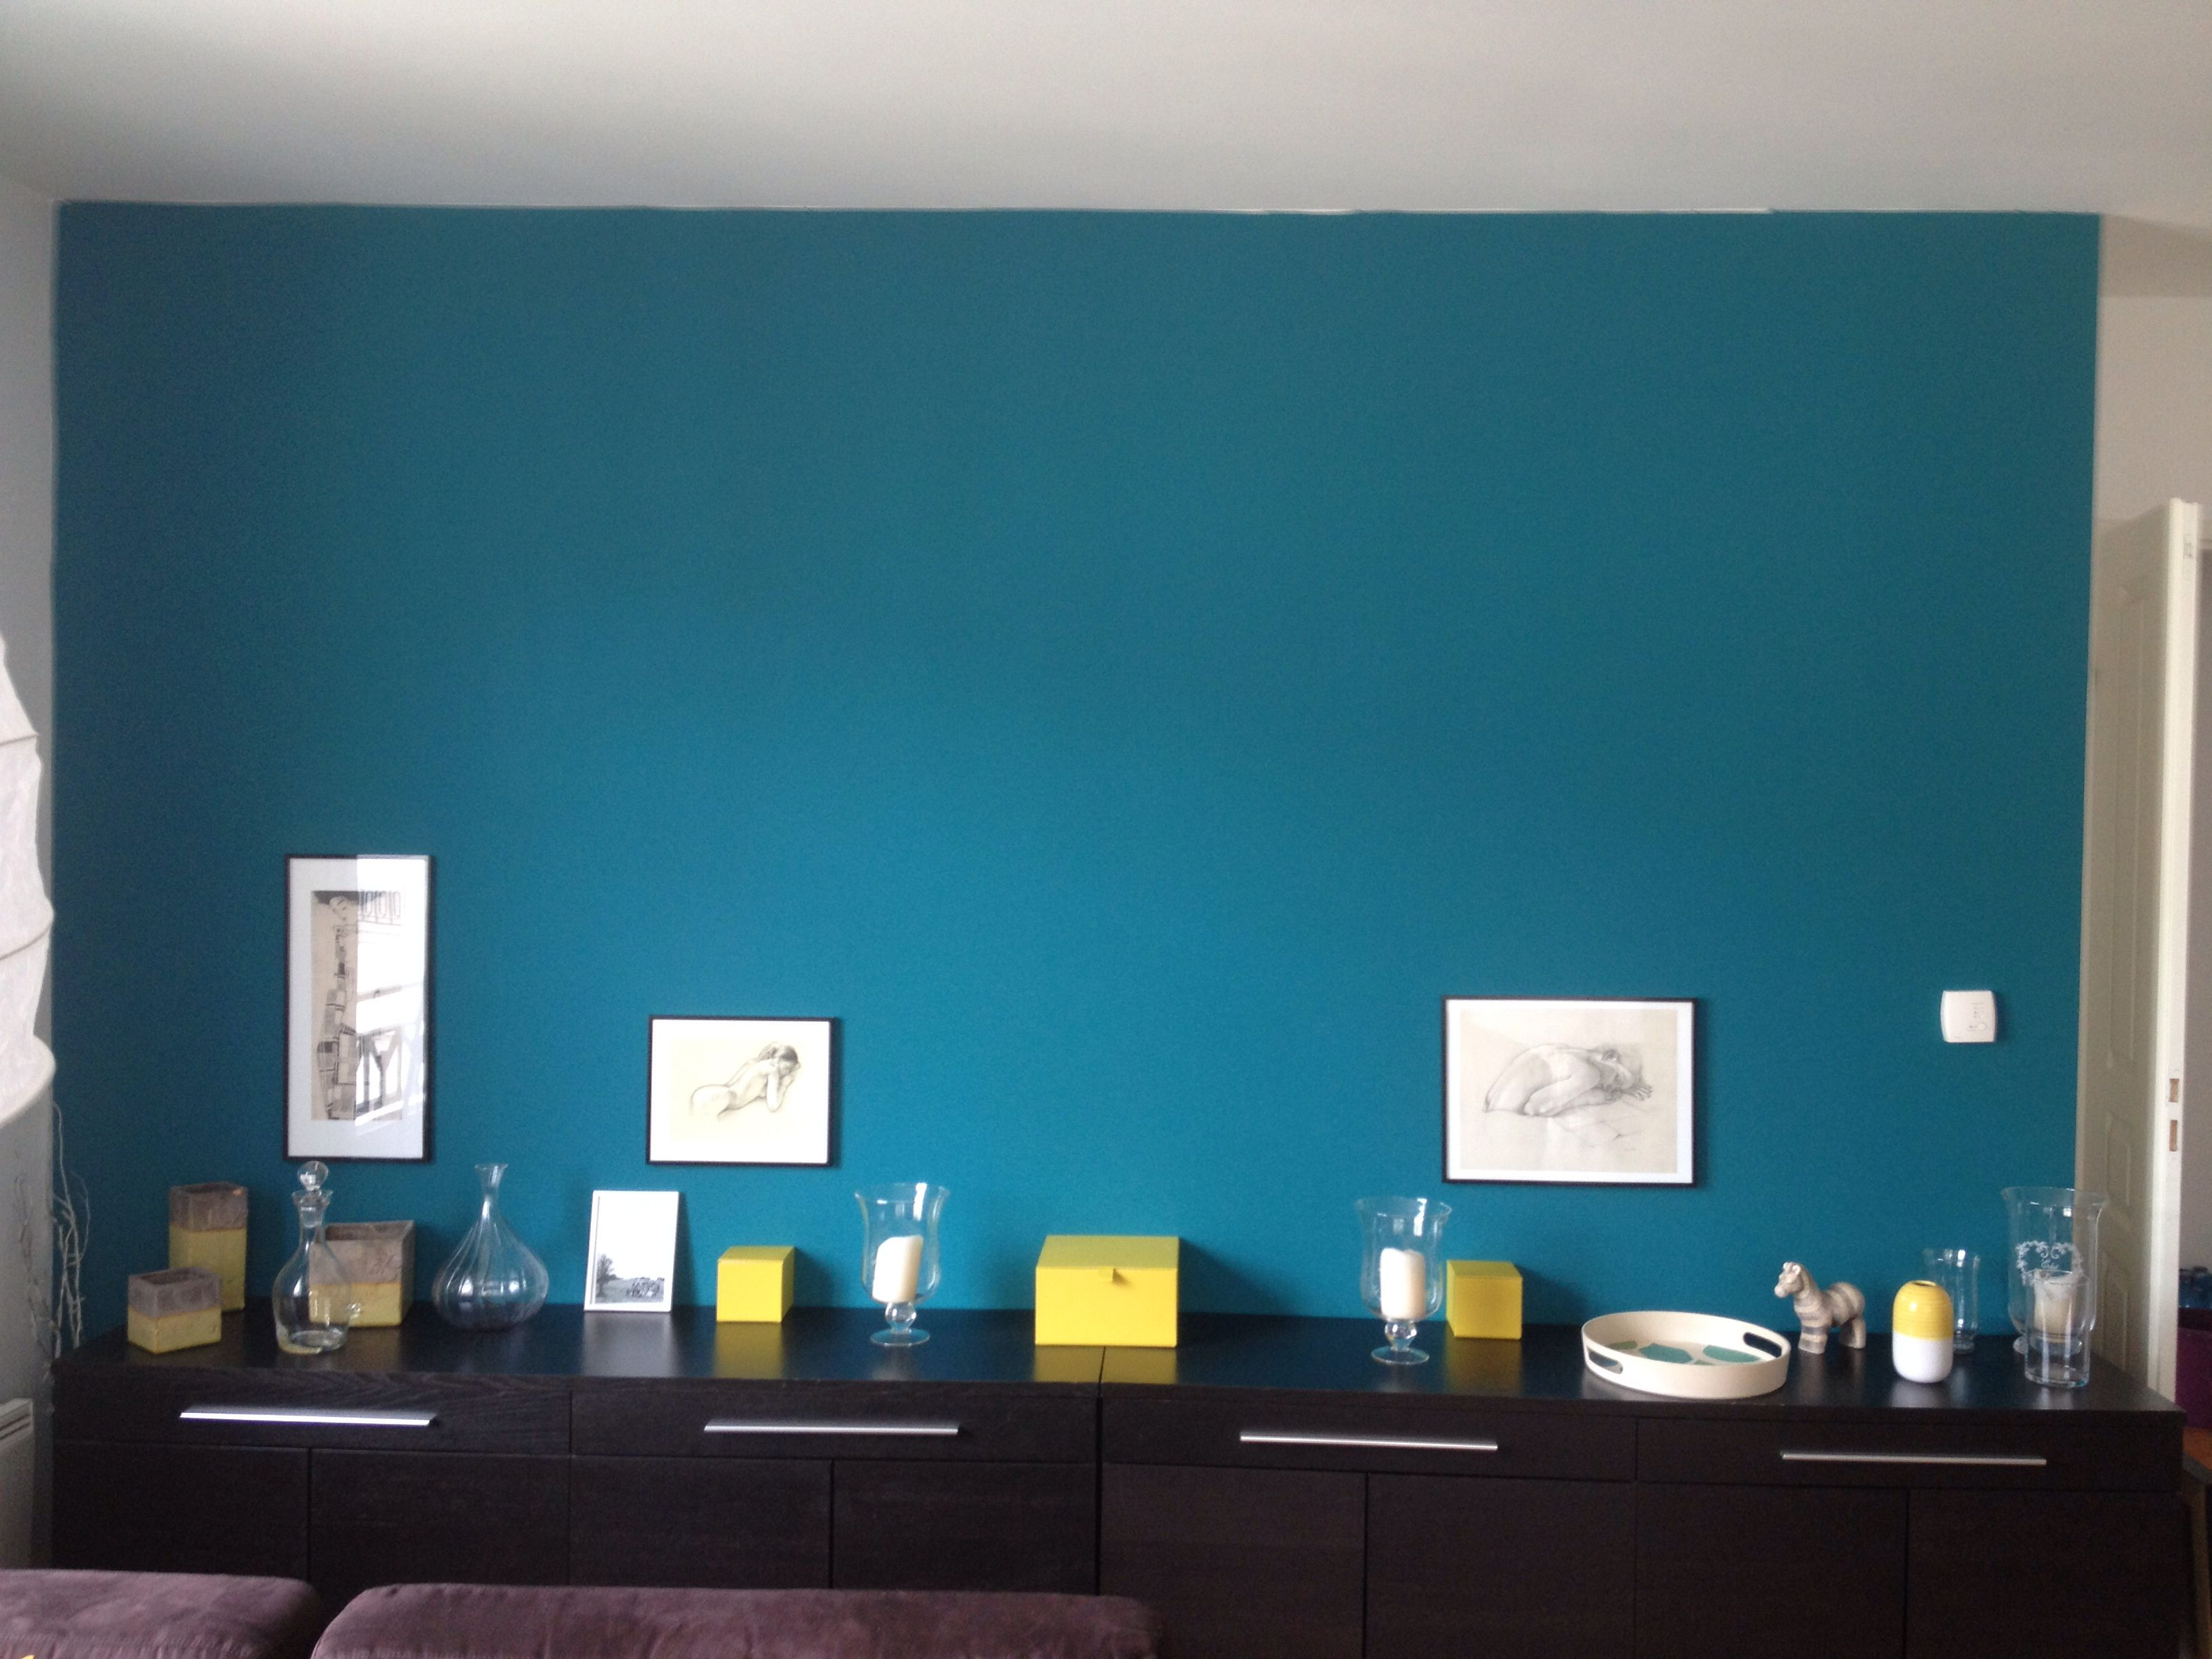 Mur Salon Bleu Canard Mur Salon Bleu Canard Couloir Pinterest Salon